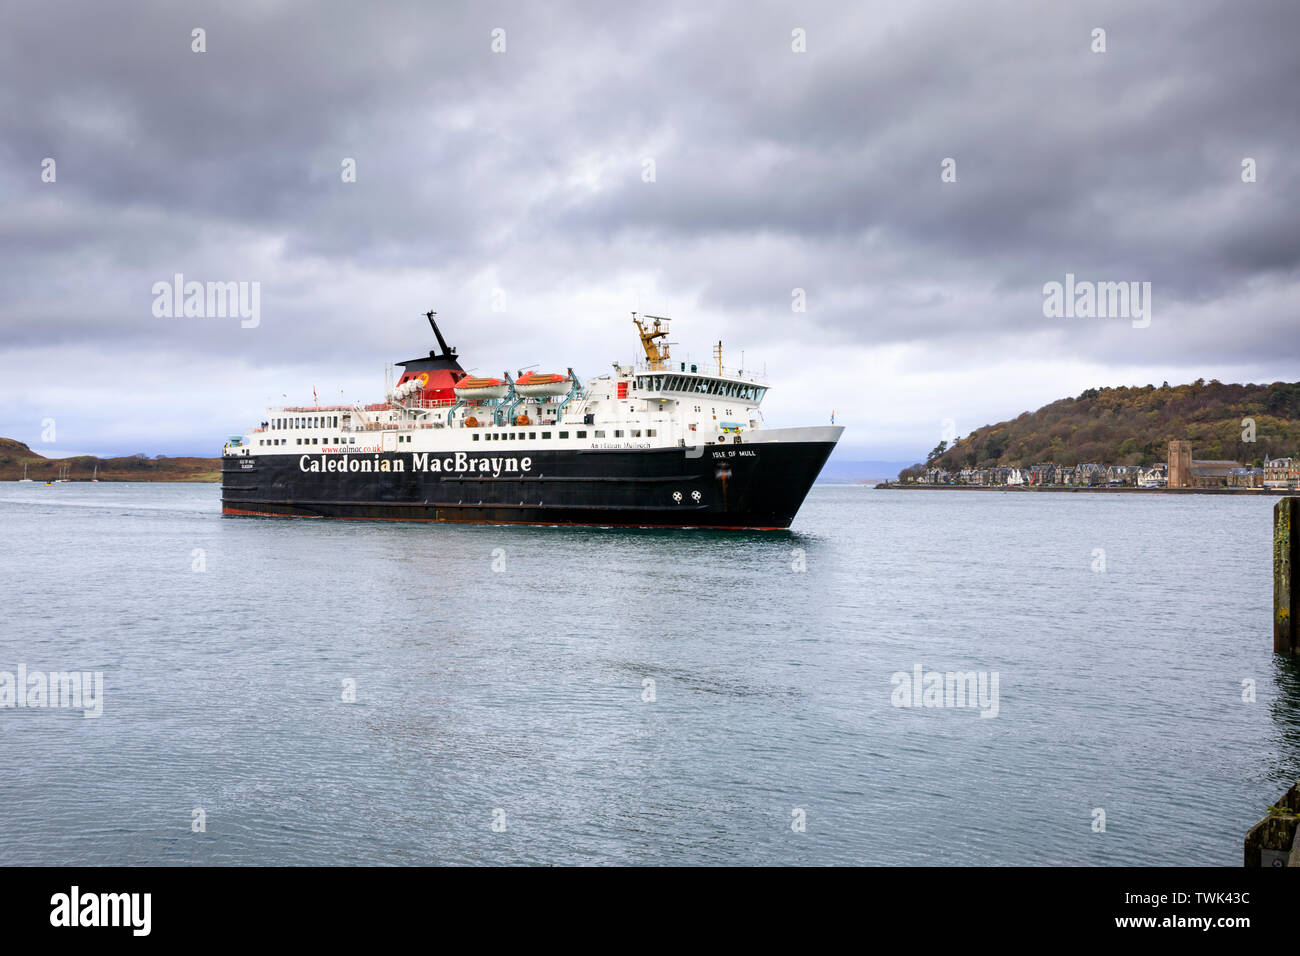 The Isle of Mull Ferry at Oban. - Stock Image